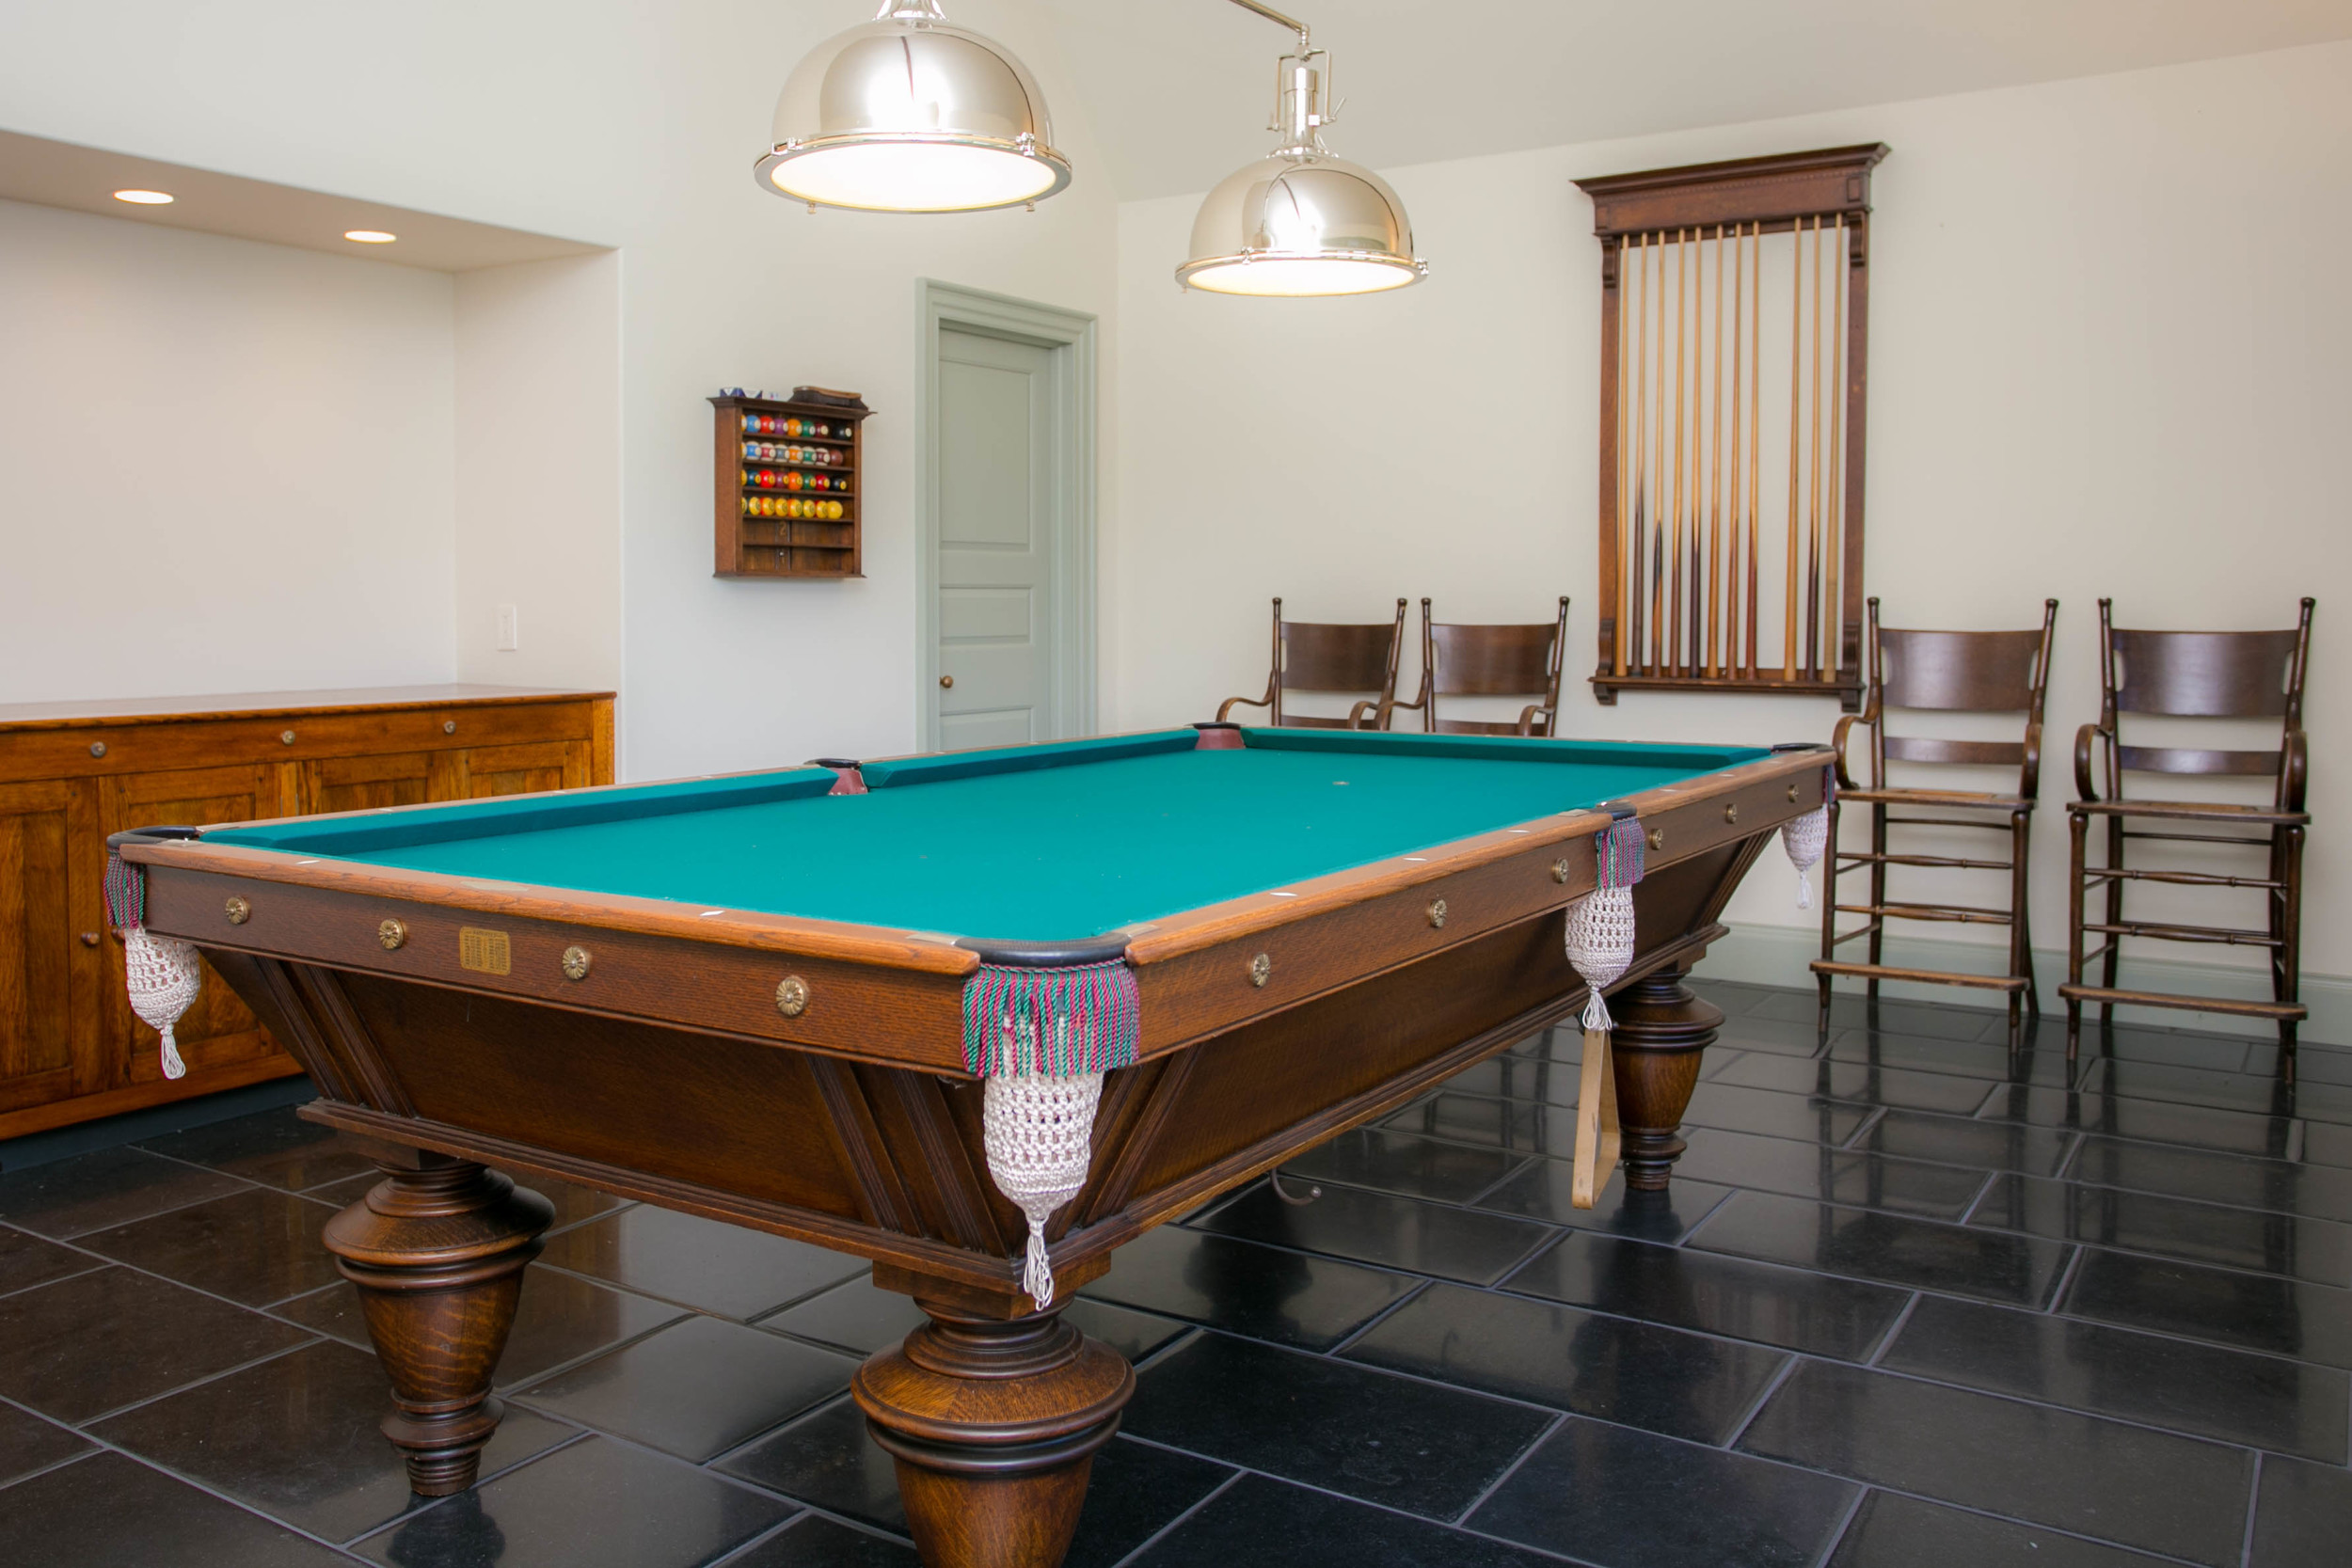 Custom pillow edged Irish blue limestone flooring, quarter-sawn oak cabinetry, bespoke pooltable lights and cathedral ceiling